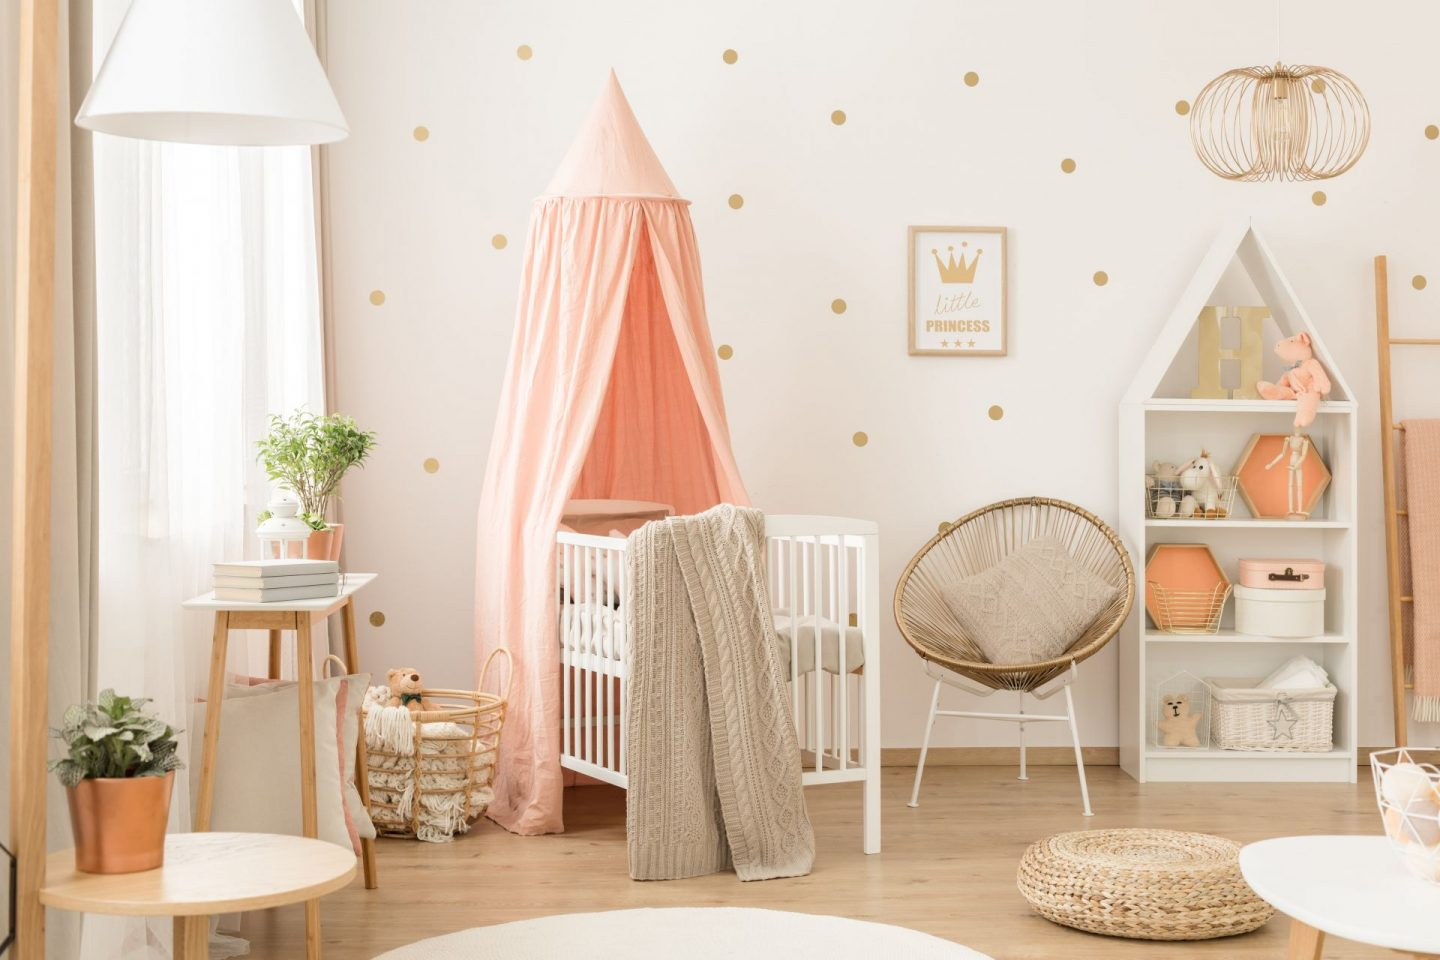 Picture of child's bedroom